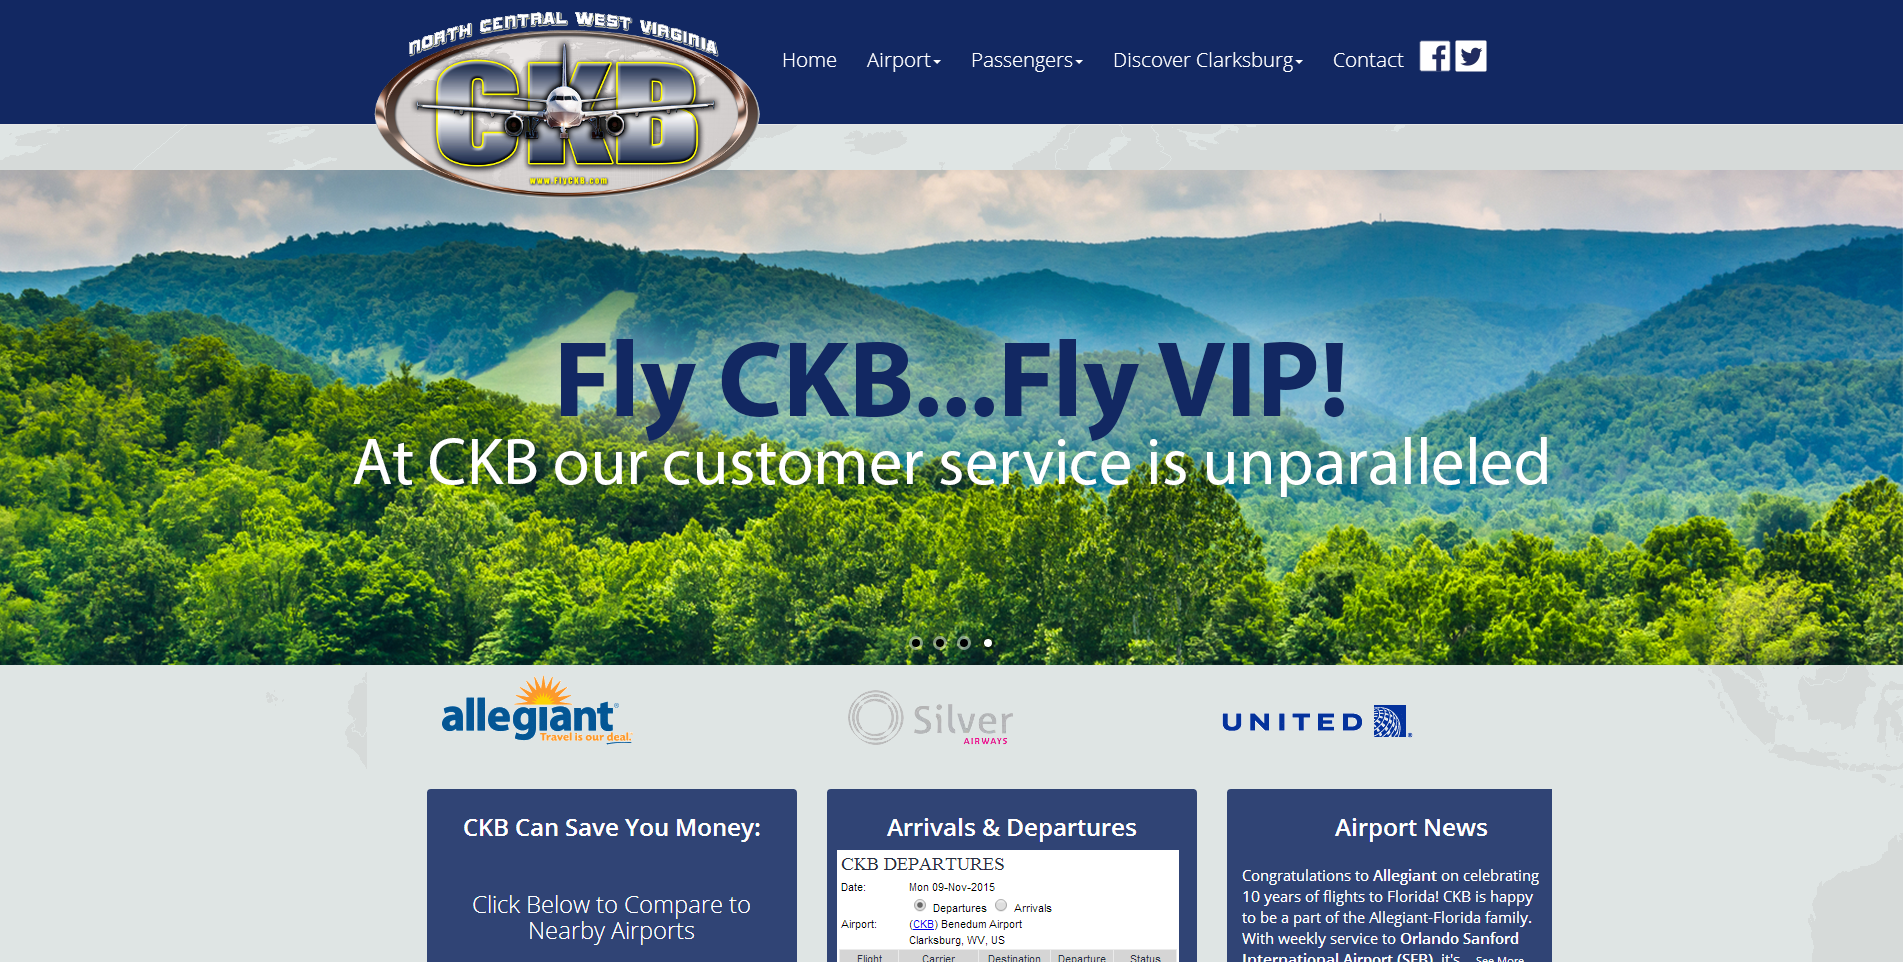 North Central West Virginia Airport Unveils New Website